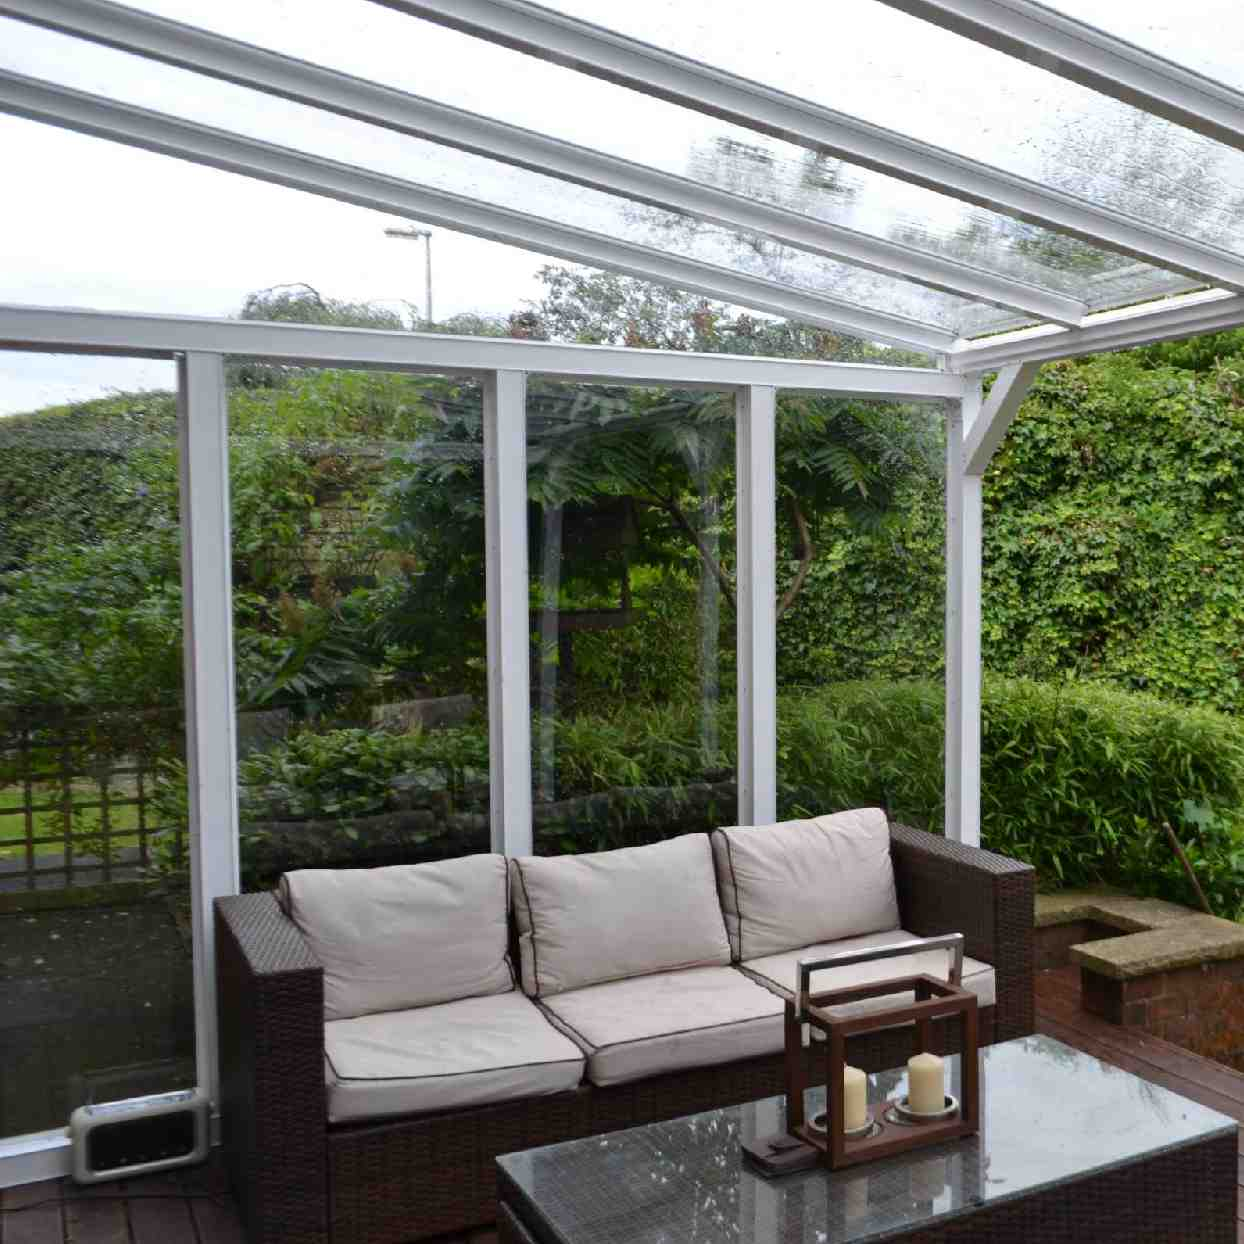 Buy Omega Verandah with 16mm Polycarbonate Glazing - 6.3m (W) x 3.5m (P), (4) Supporting Posts online today